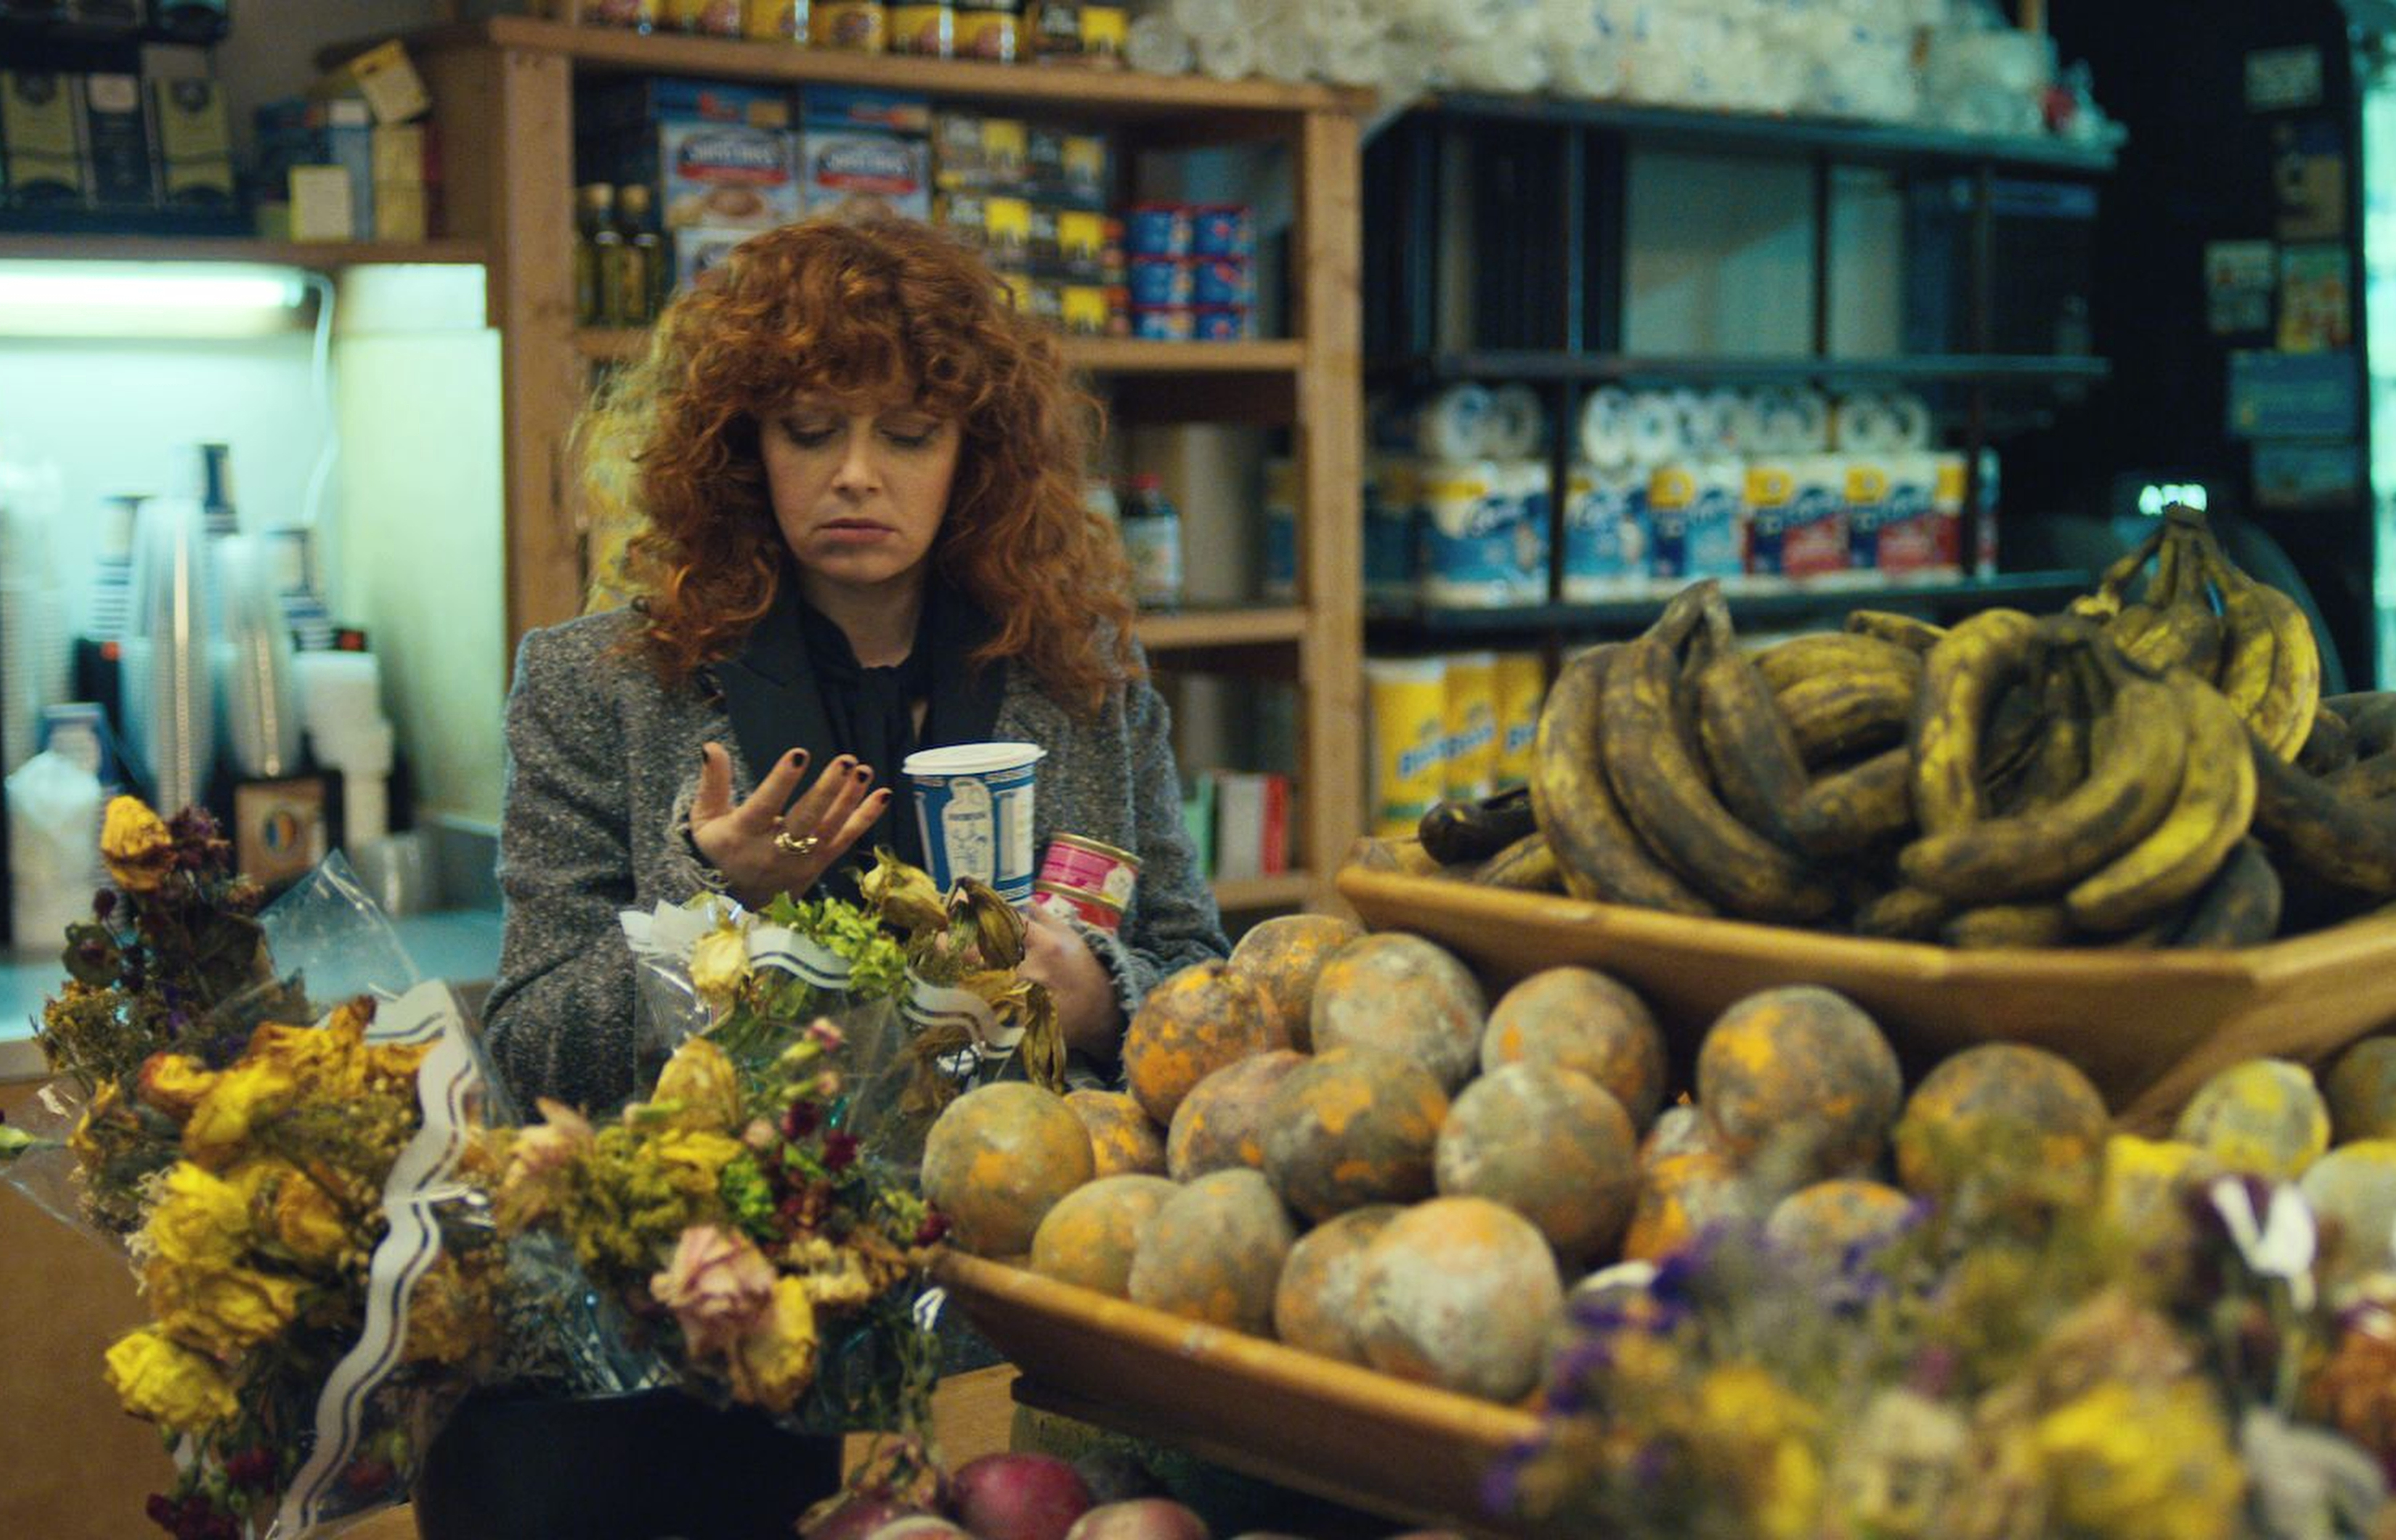 Netflix's 'Russian Doll' Perfectly Captures NYC's Late Night Bodega Vibes